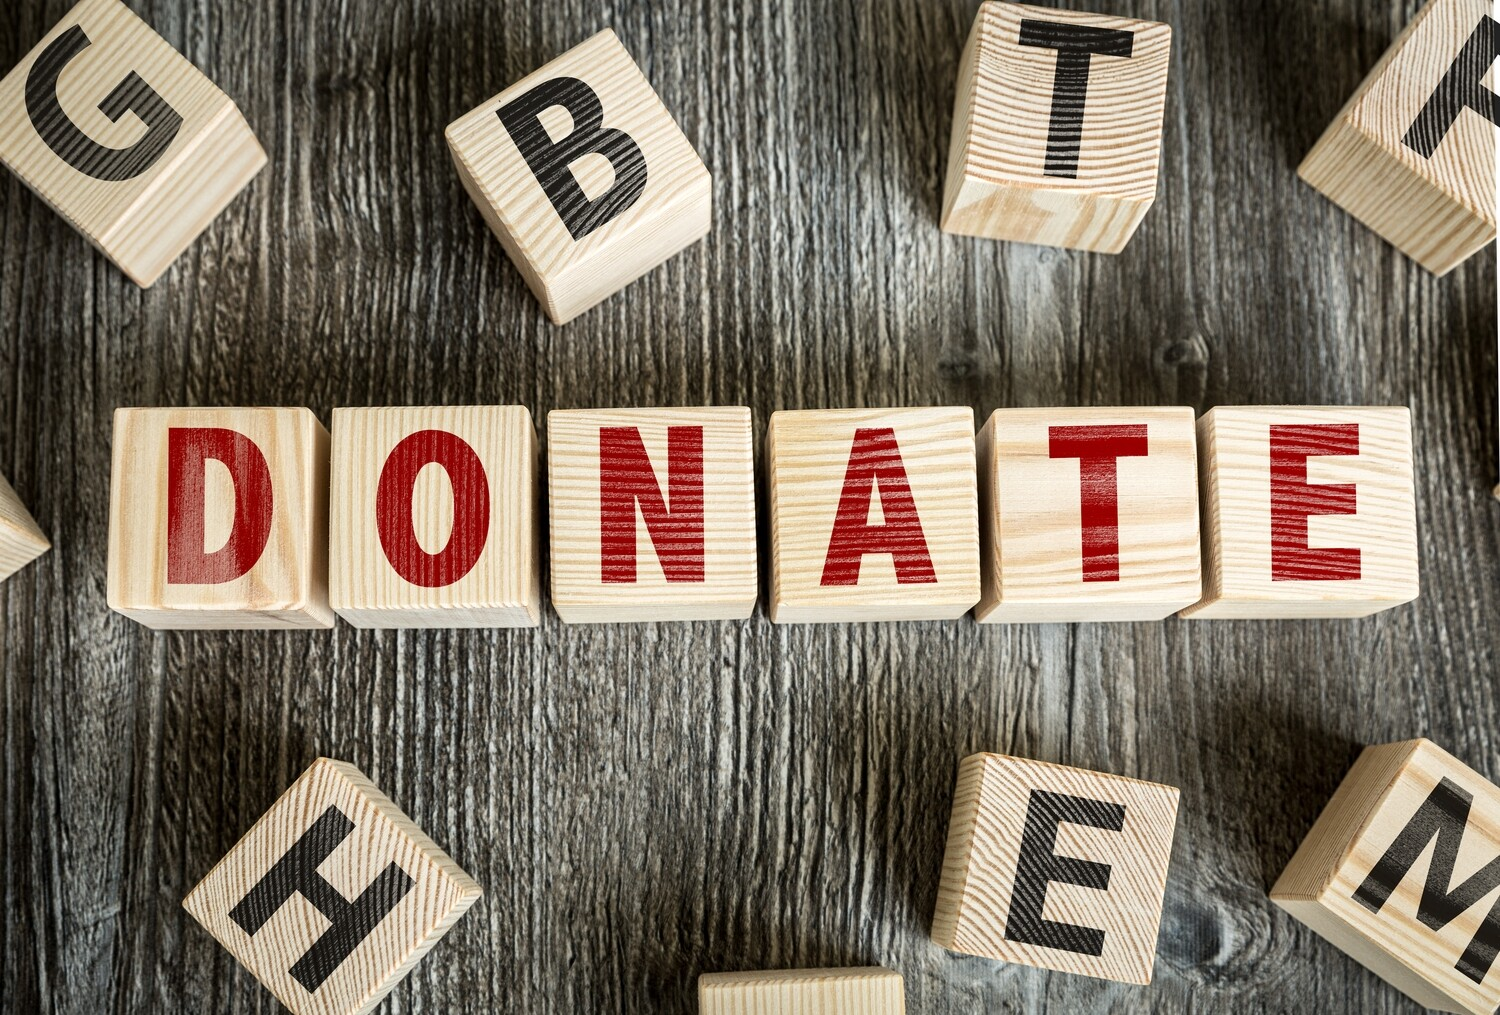 Donate to support the non-profits